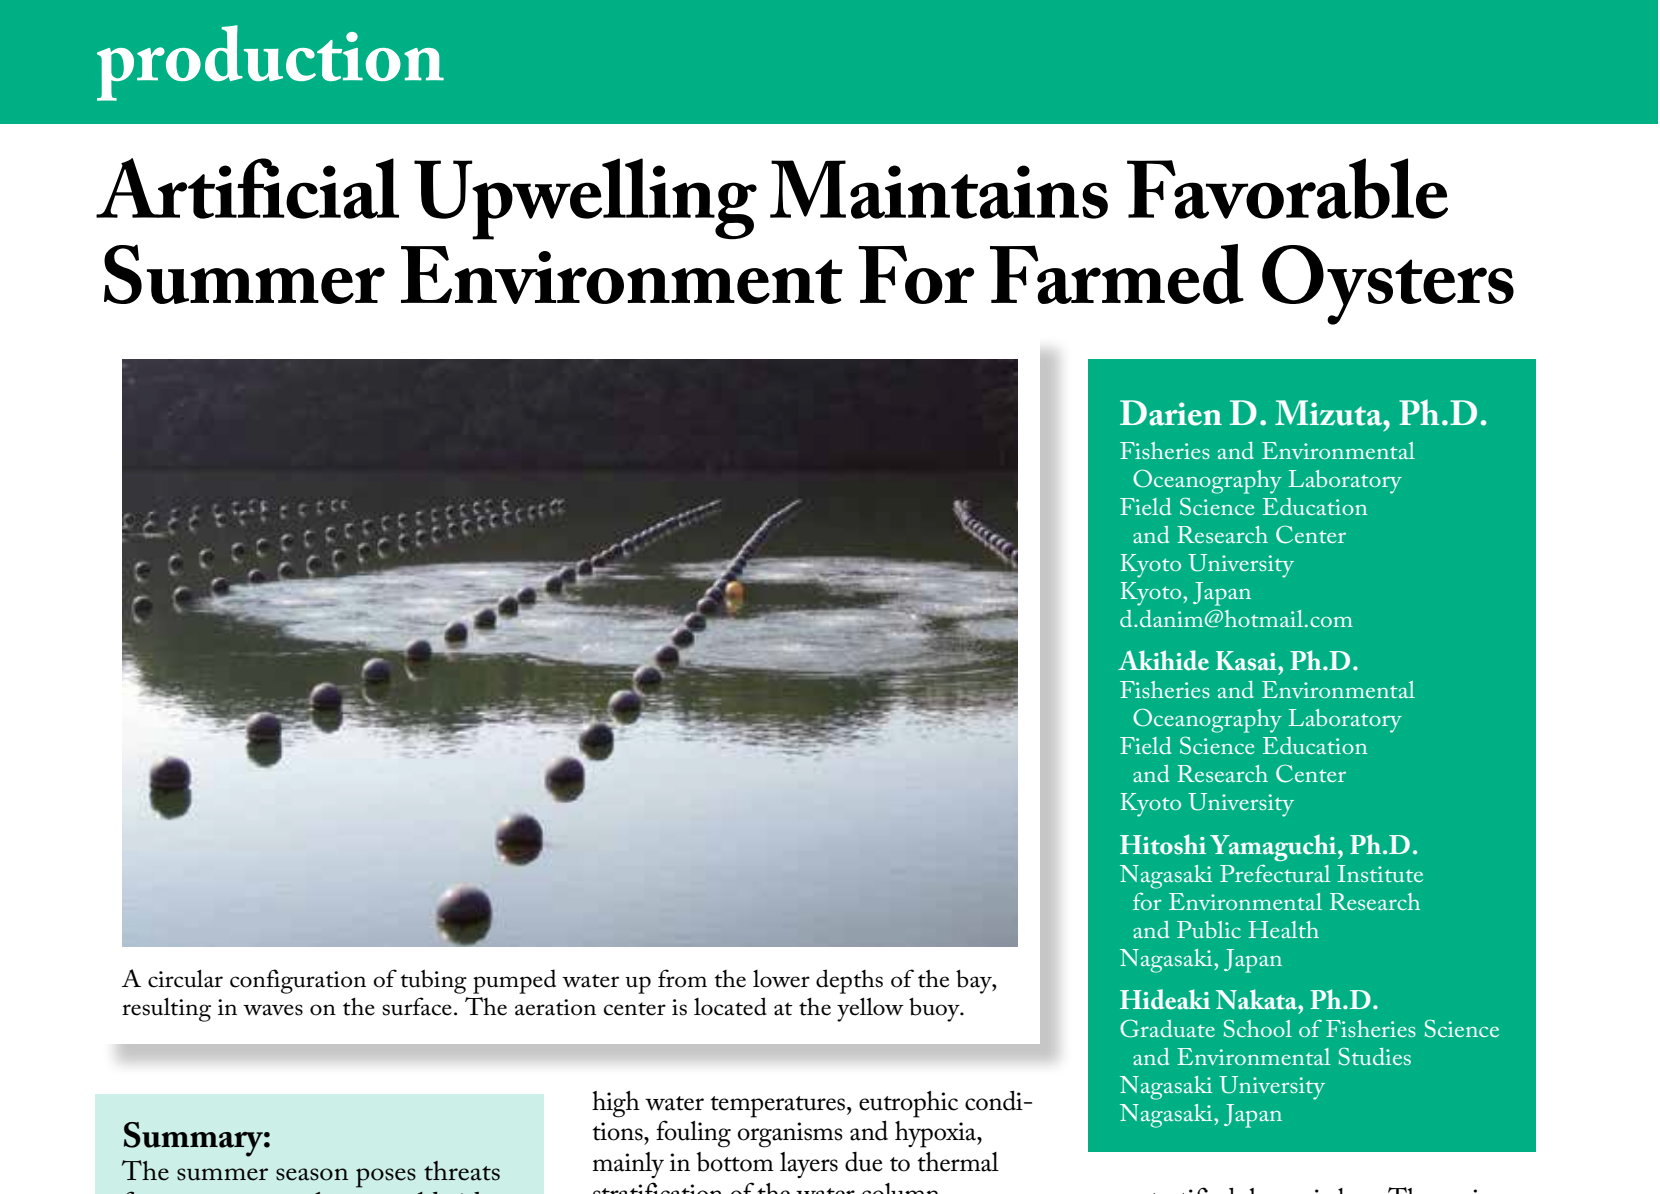 Artificial upwelling maintains favorable summer environment for farmed oysters